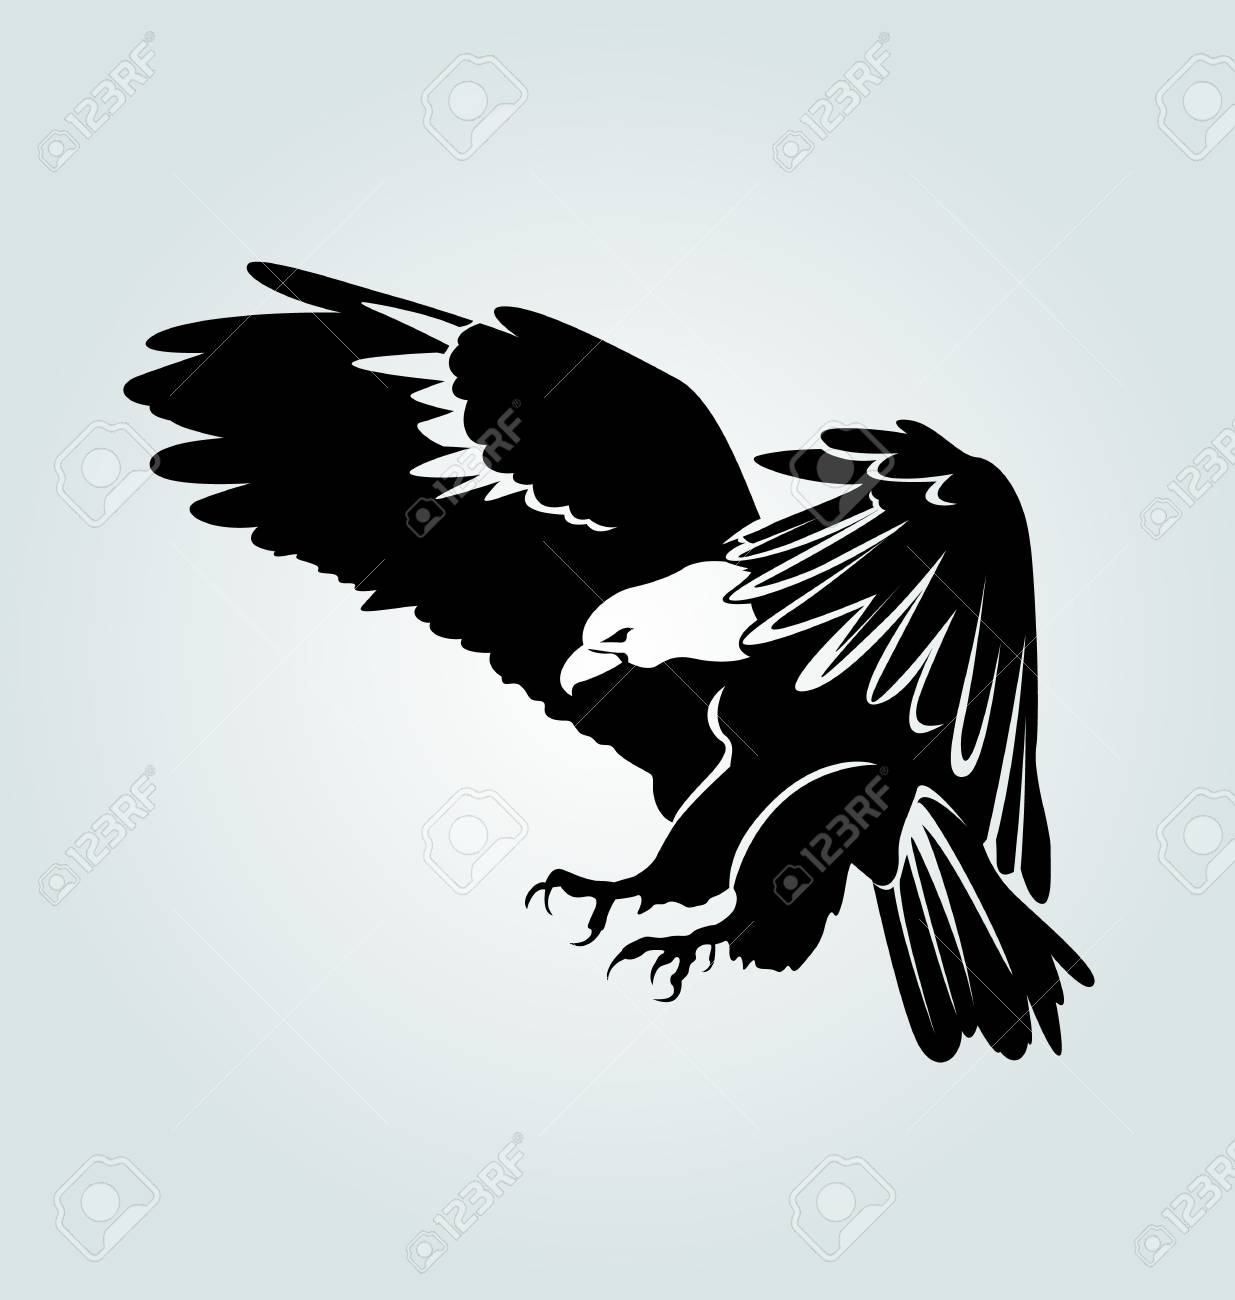 Vector Silhouette Of Flying Eagle Royalty Free Cliparts Vectors And Stock Illustration Image 93191703 Eagle silhouette png cliparts, all these png images has no background, free & unlimited downloads. vector silhouette of flying eagle